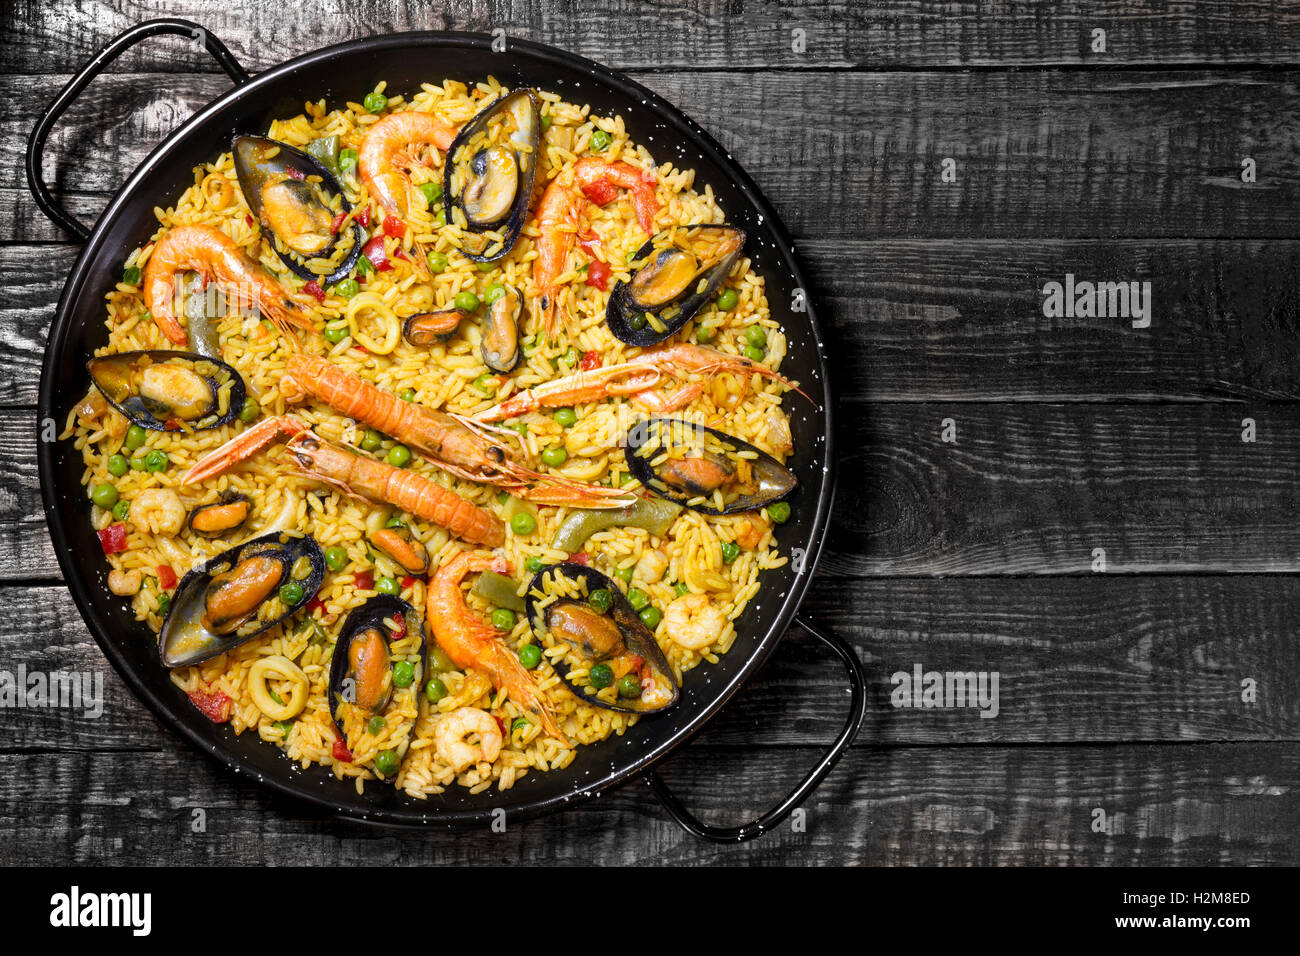 Spanish paella on a dark wooden table with copy space on the right - Stock Image